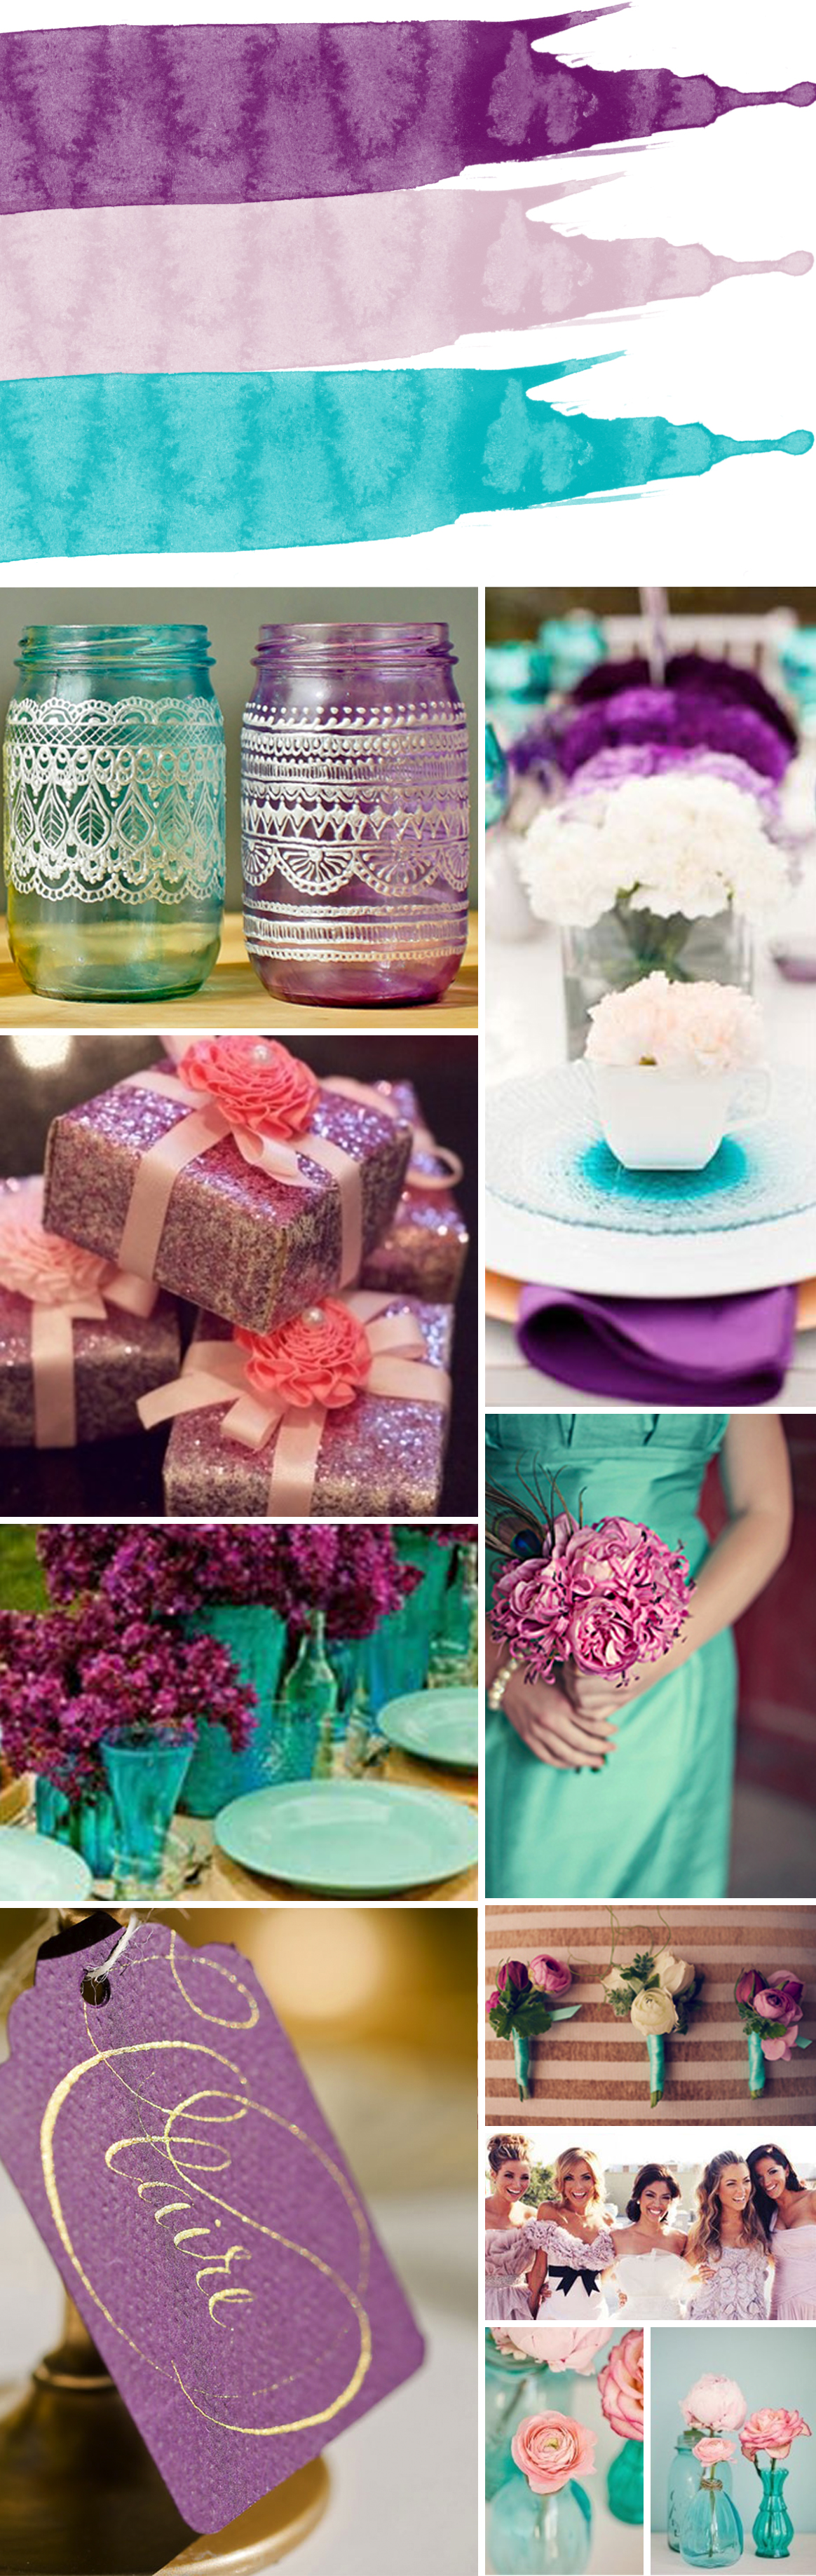 Turquoise, Mauve and Purple Color Palette